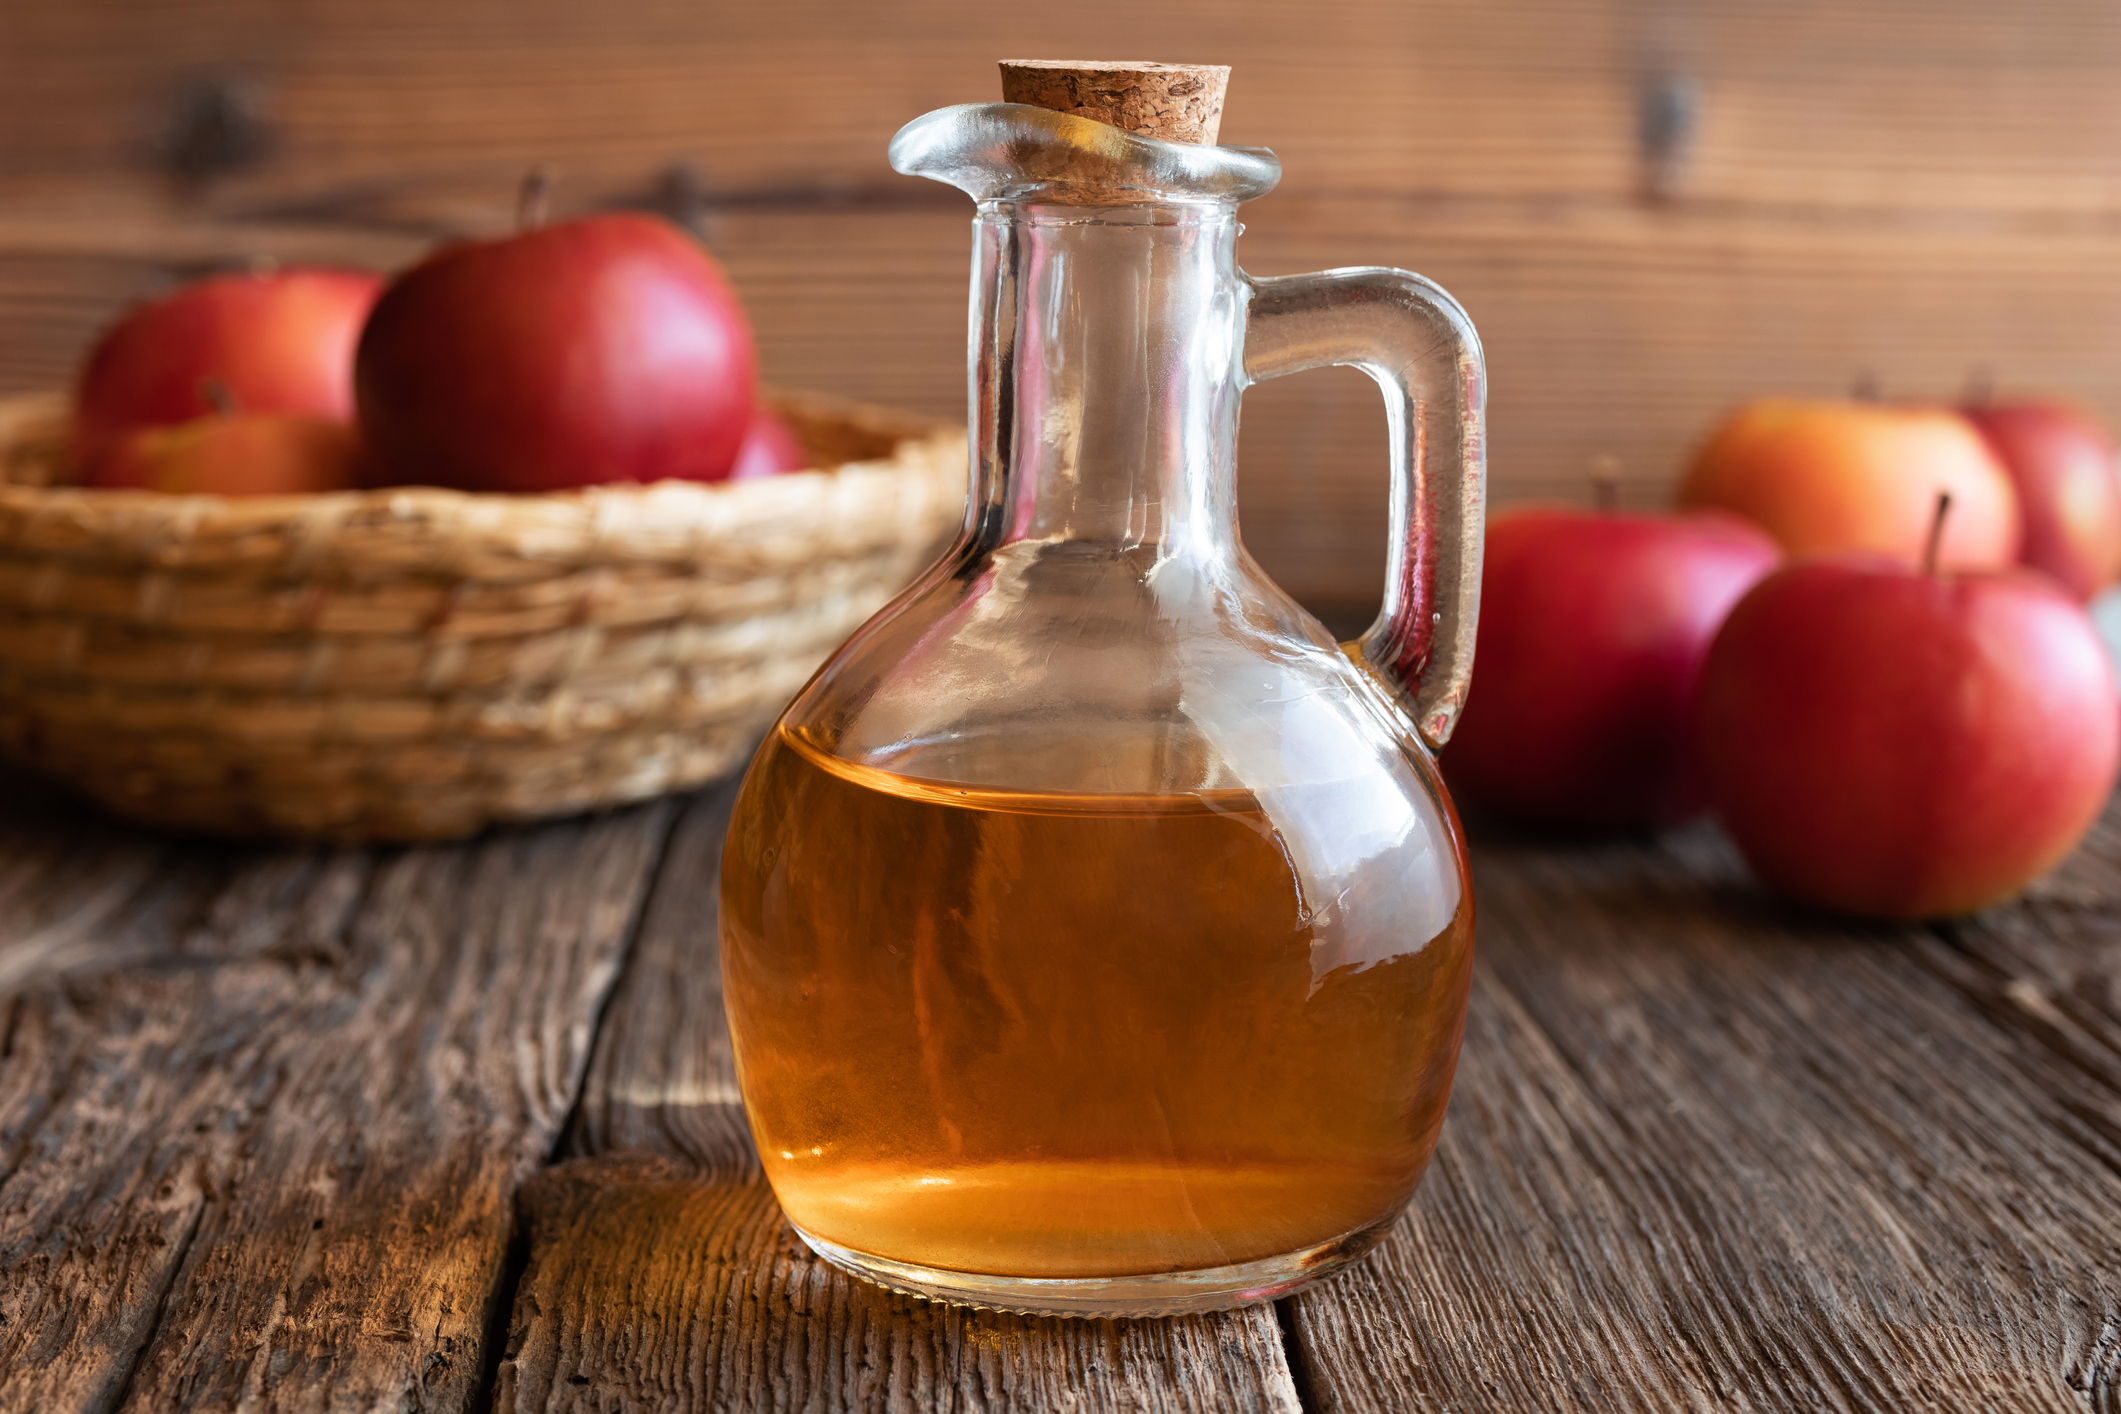 Lose up to 17 Pounds in 3 Days With This Apple Cider Vinegar Hack